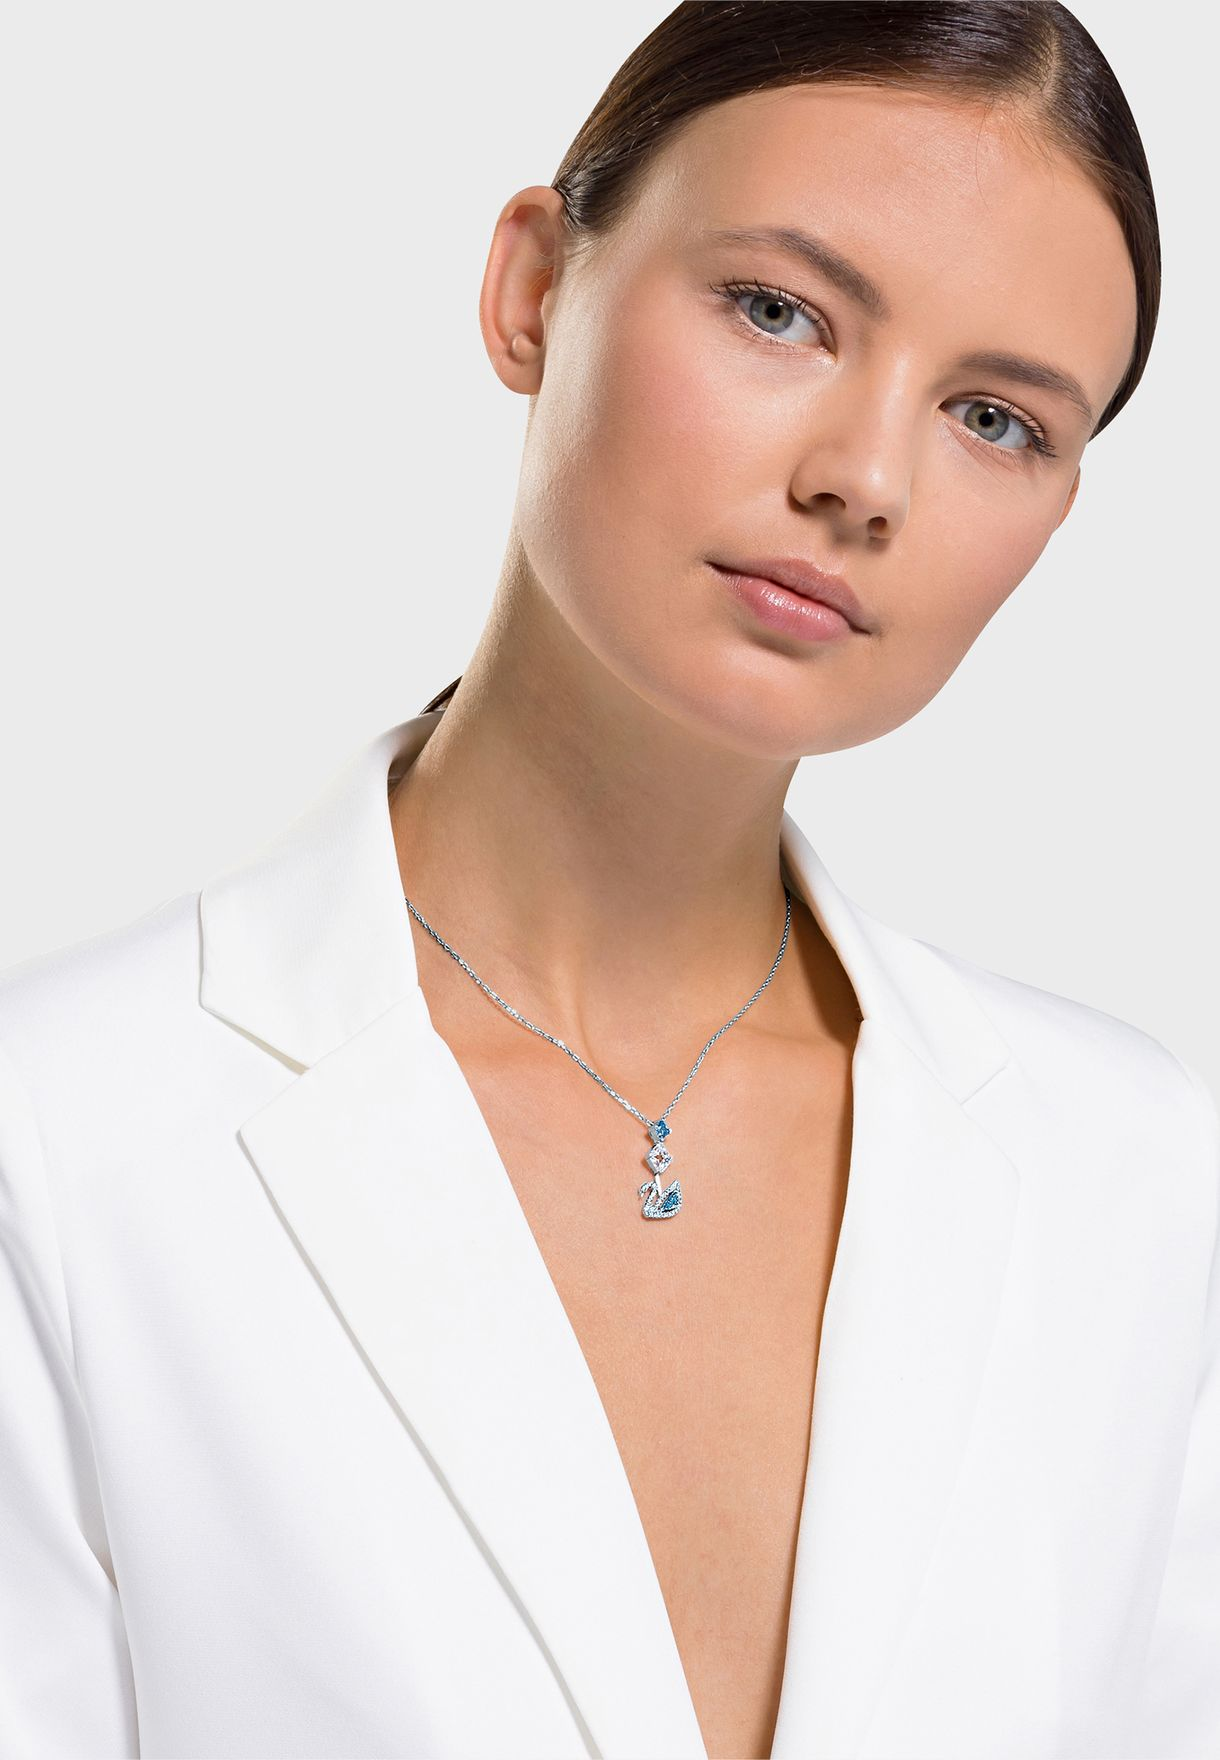 Dazzling Swan Pendant Necklace